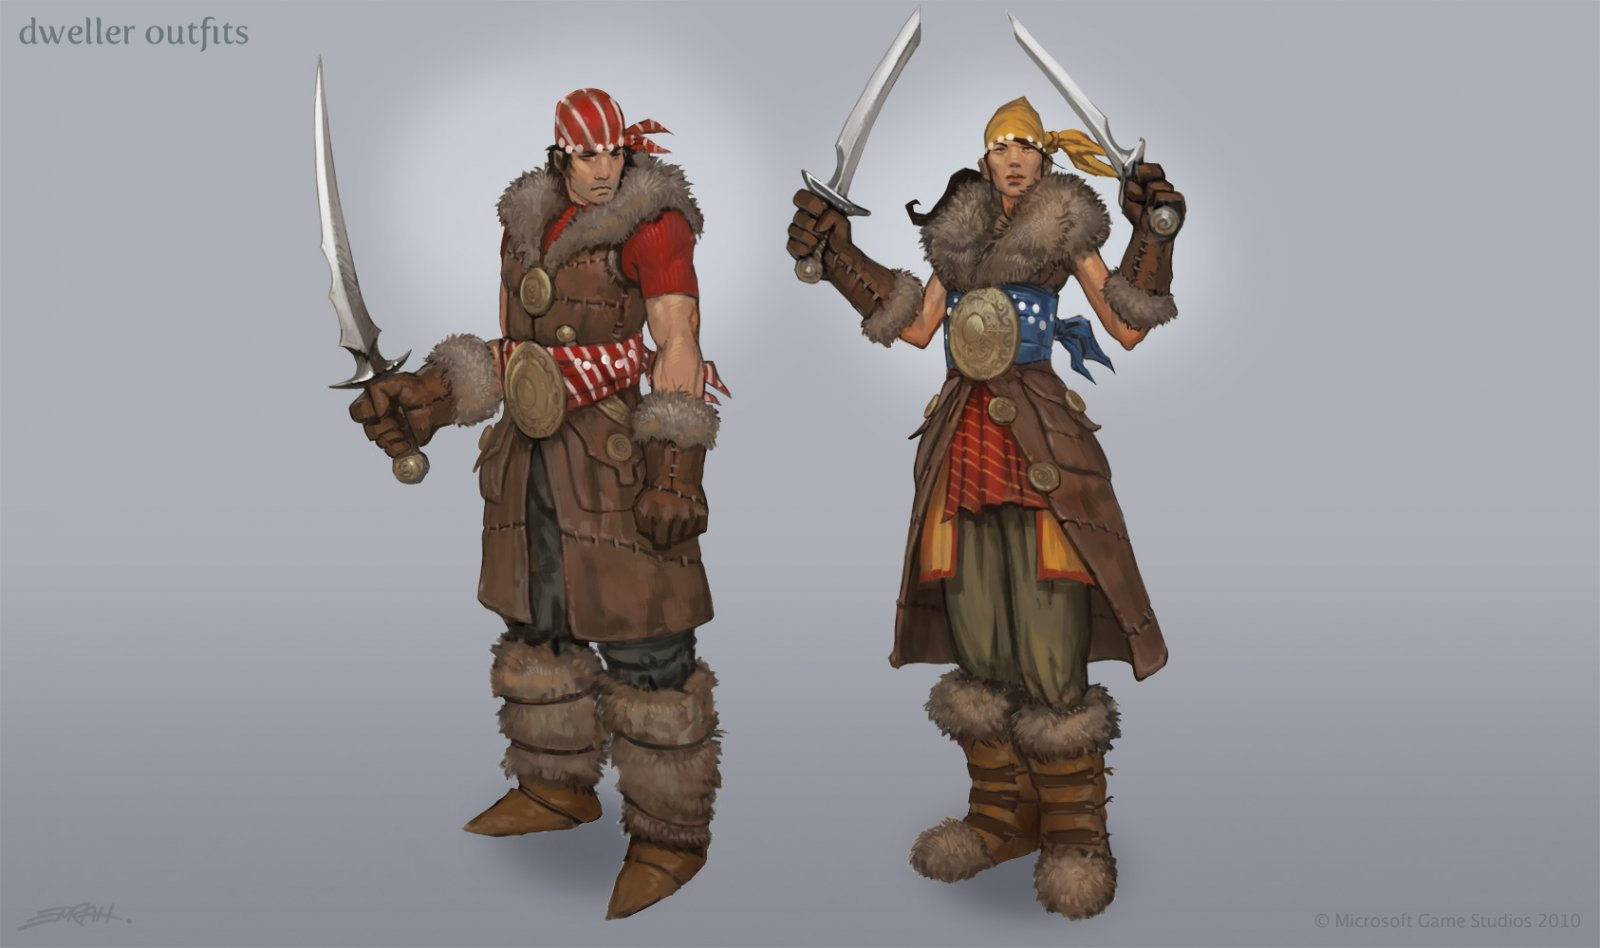 Fable 3 Soldier Outfit Related Keywords & Suggestions - Fable 3